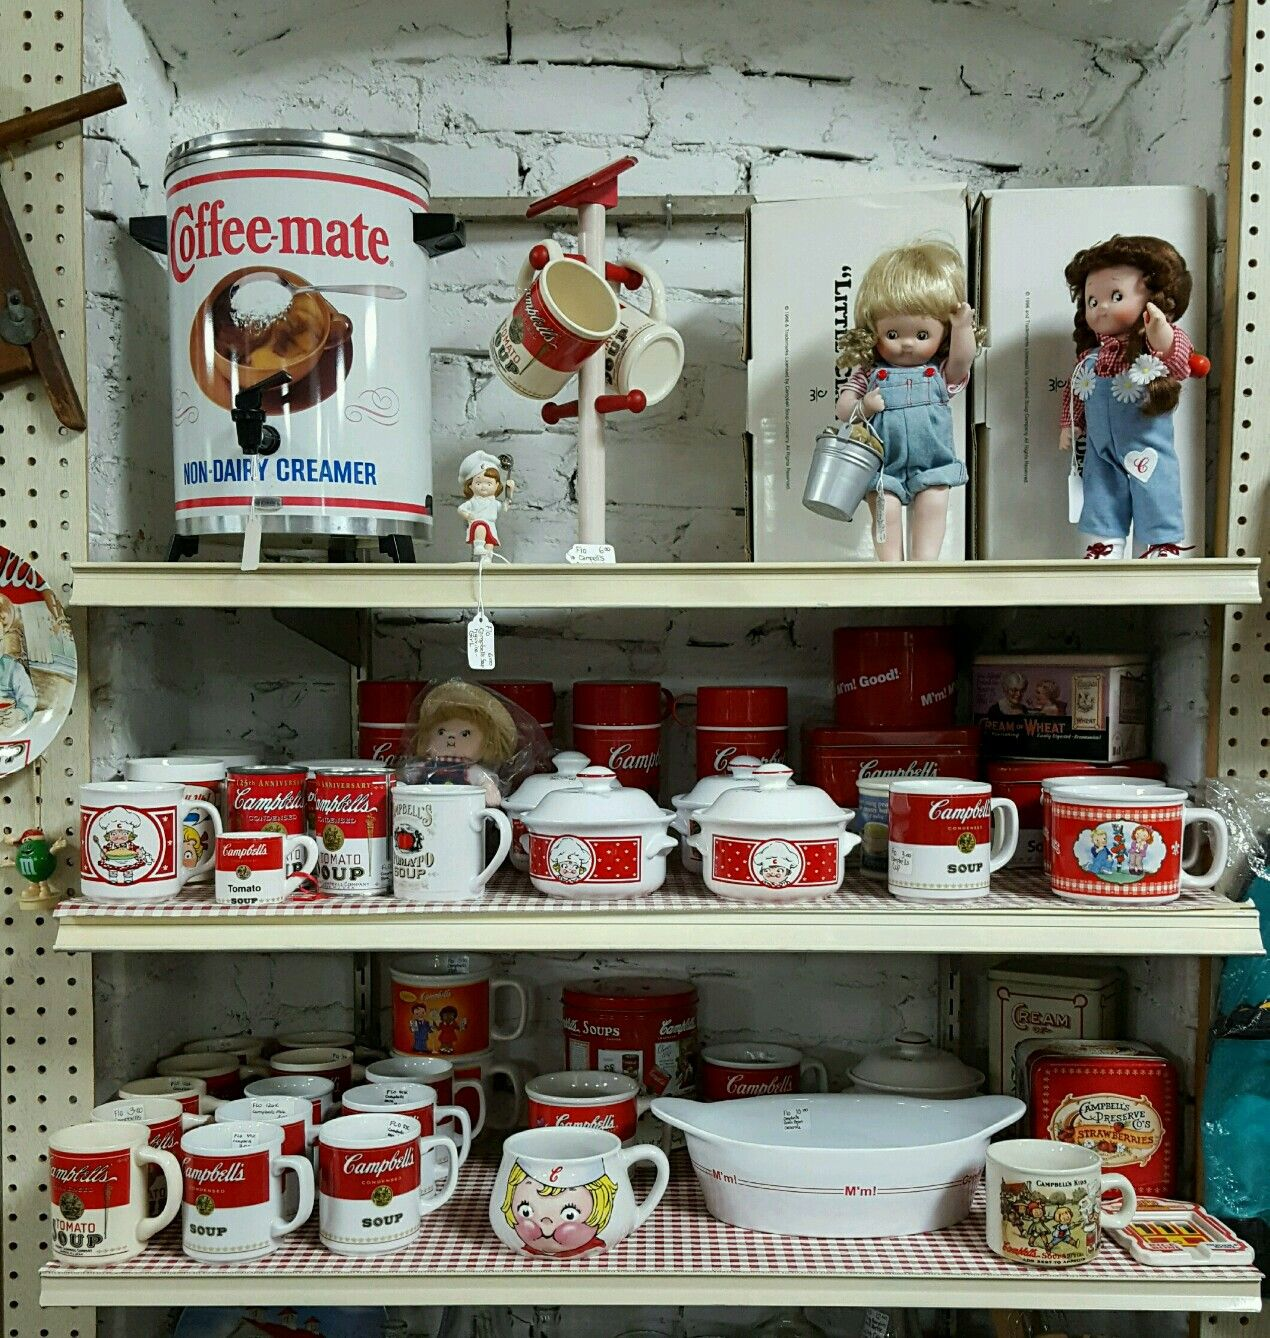 Campbells soup items available  at the Columbus Antique Mall. Columbus Wisconsin.